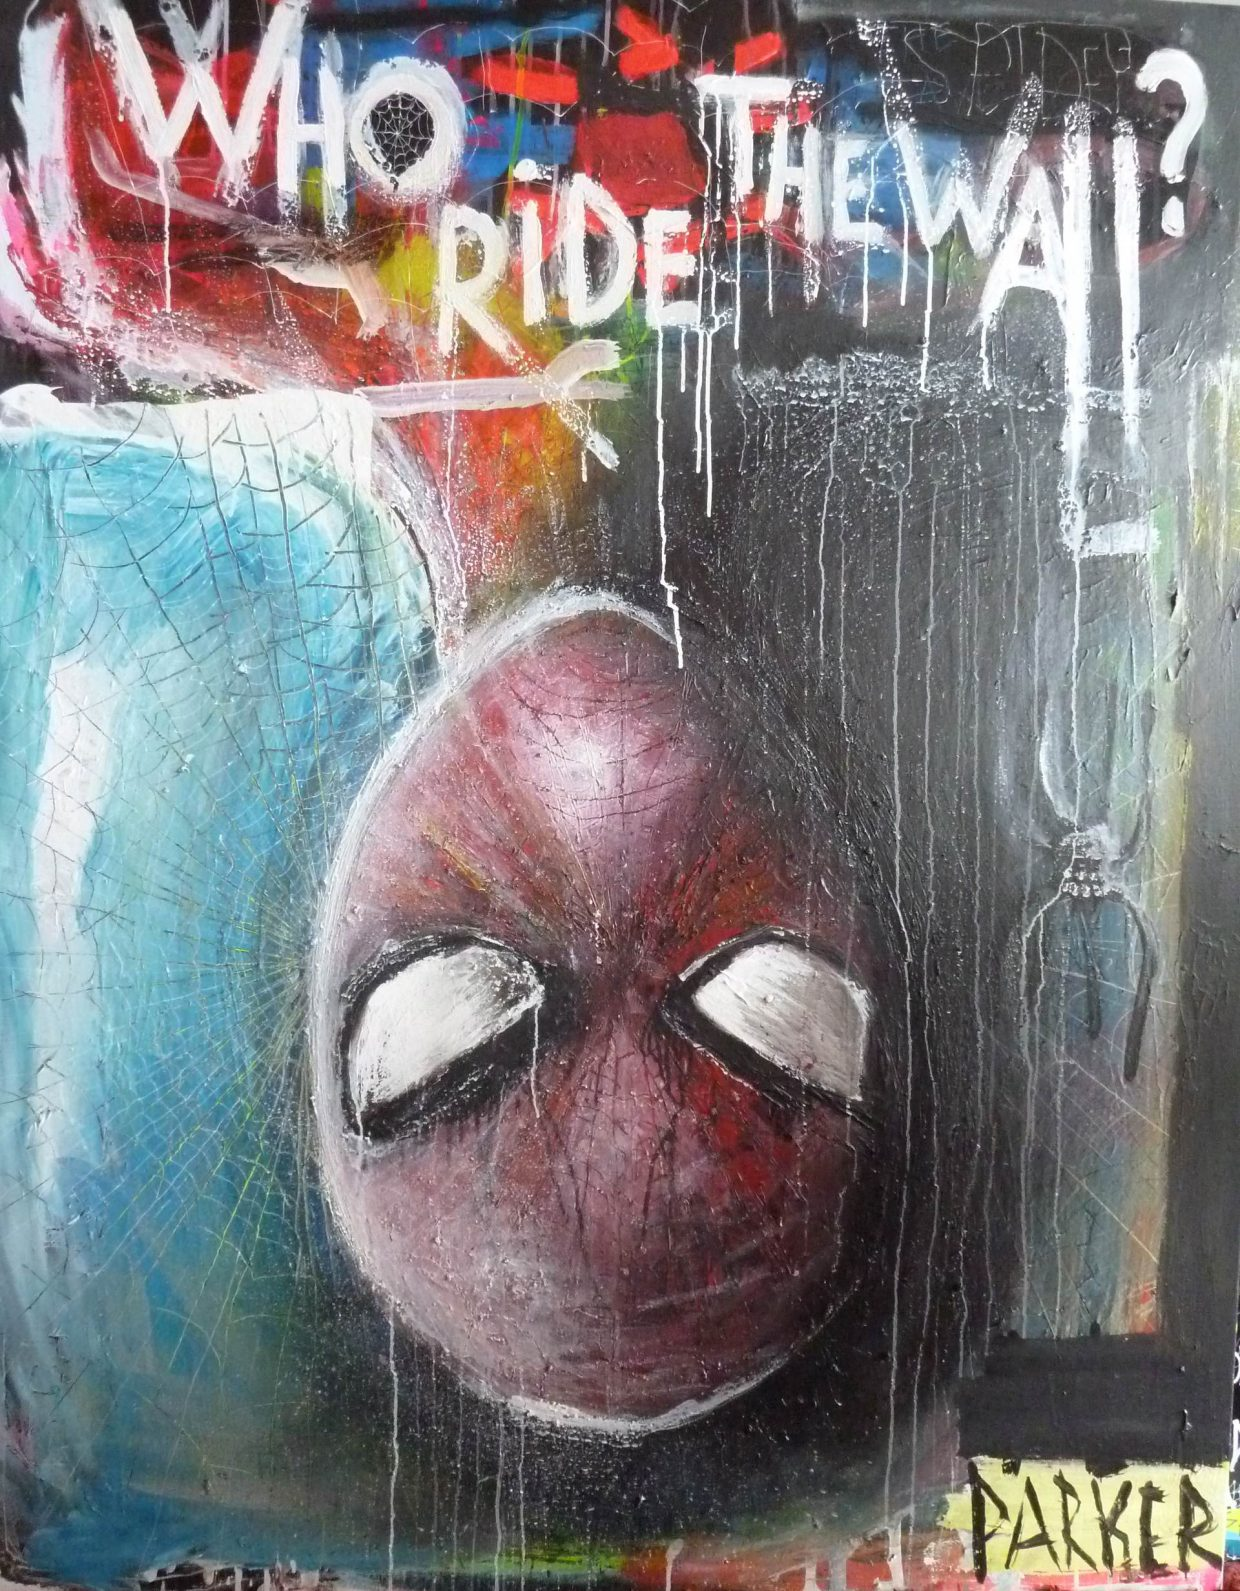 Who ride the wall - 160 x 120 cm